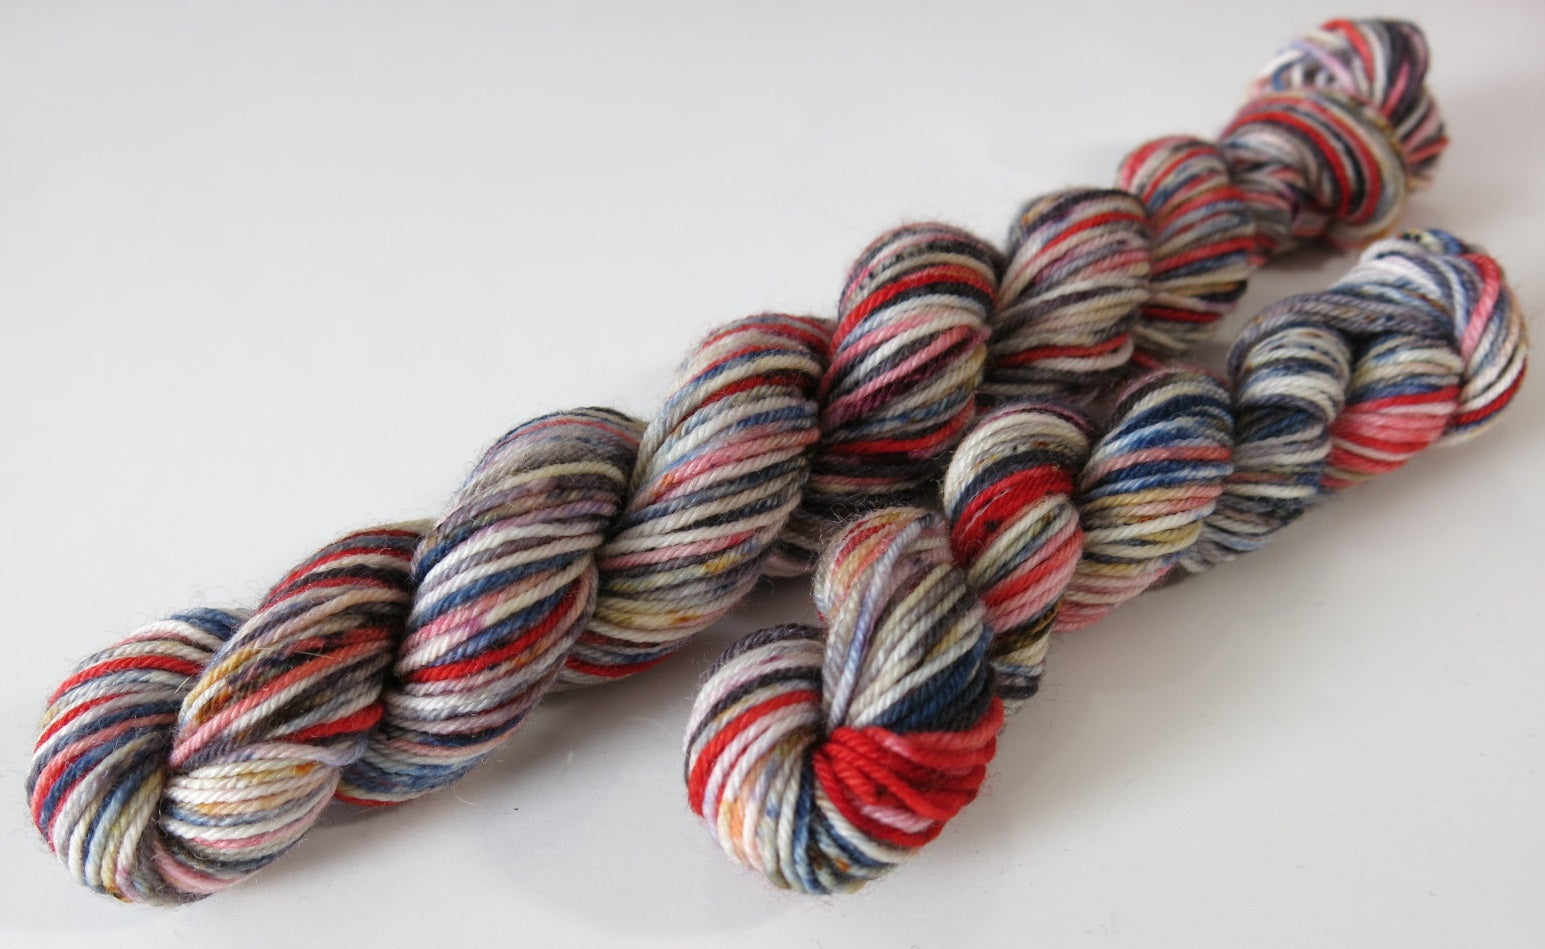 redcap inspired speckled red blue white and black sock yarn mini skein